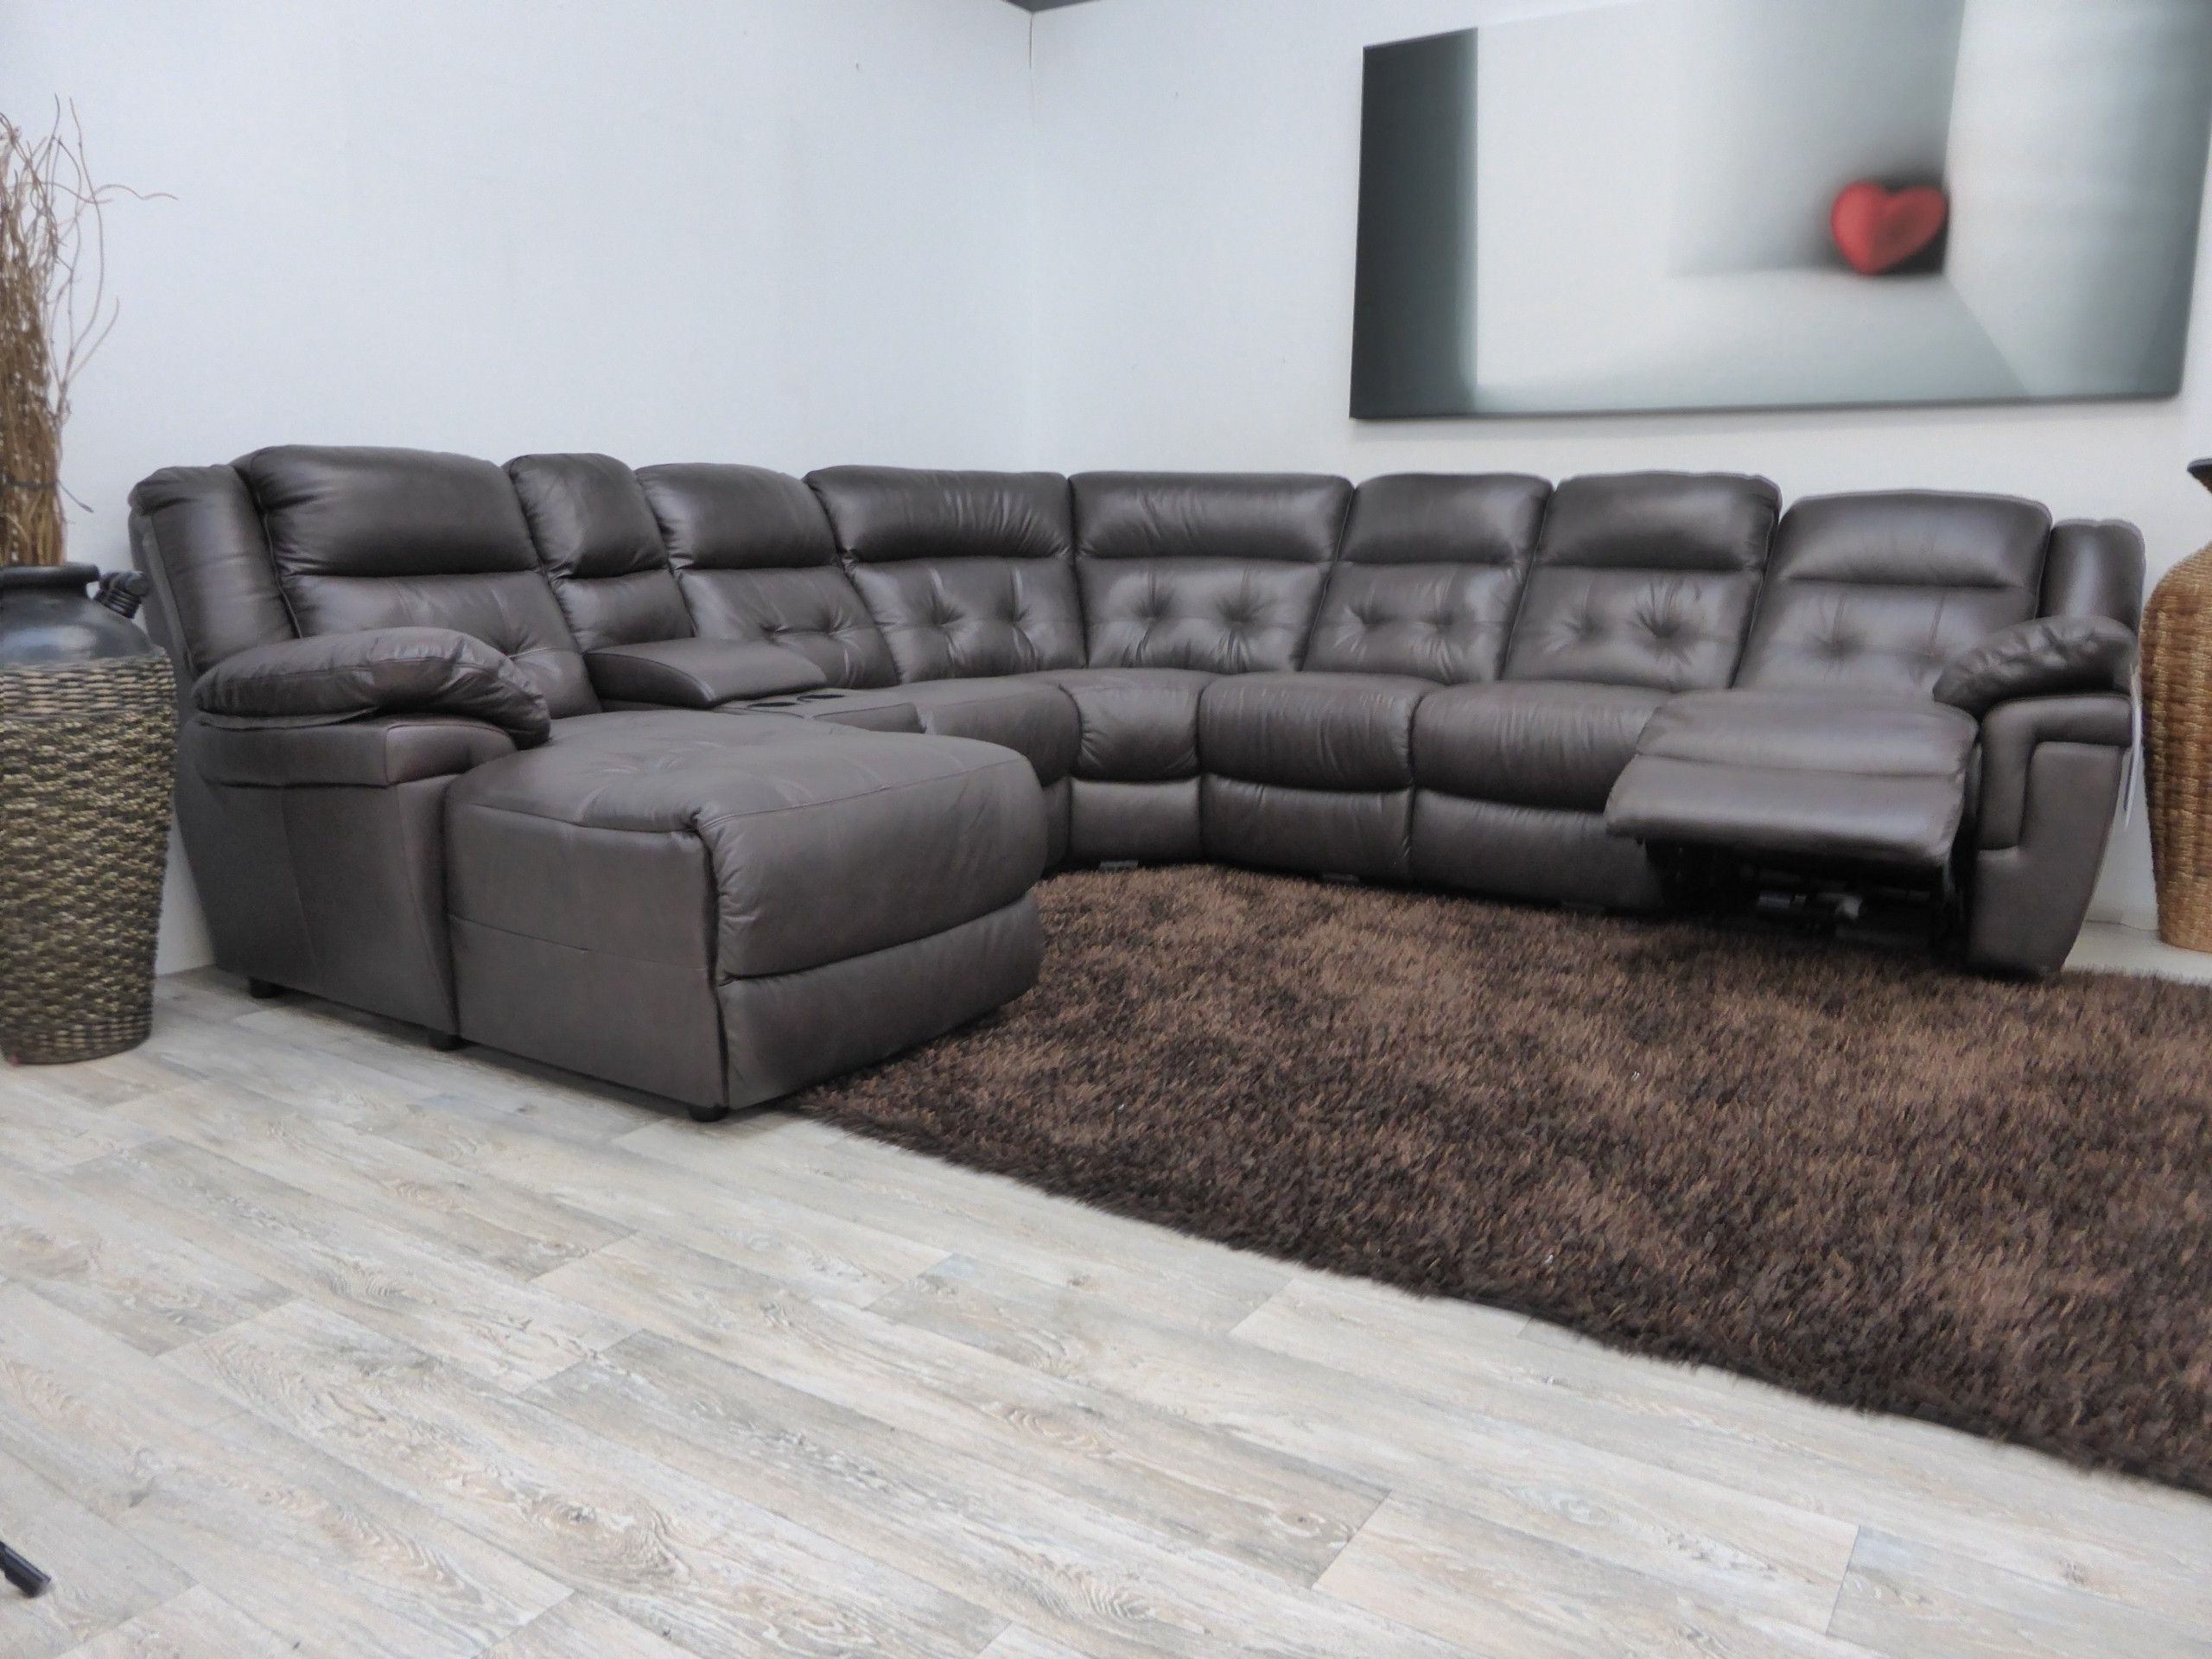 Queens Ny Sectional Sofas Within Recent L Shaped Sofa Design With Black Upholstery Faux Leather Sofa (View 11 of 20)